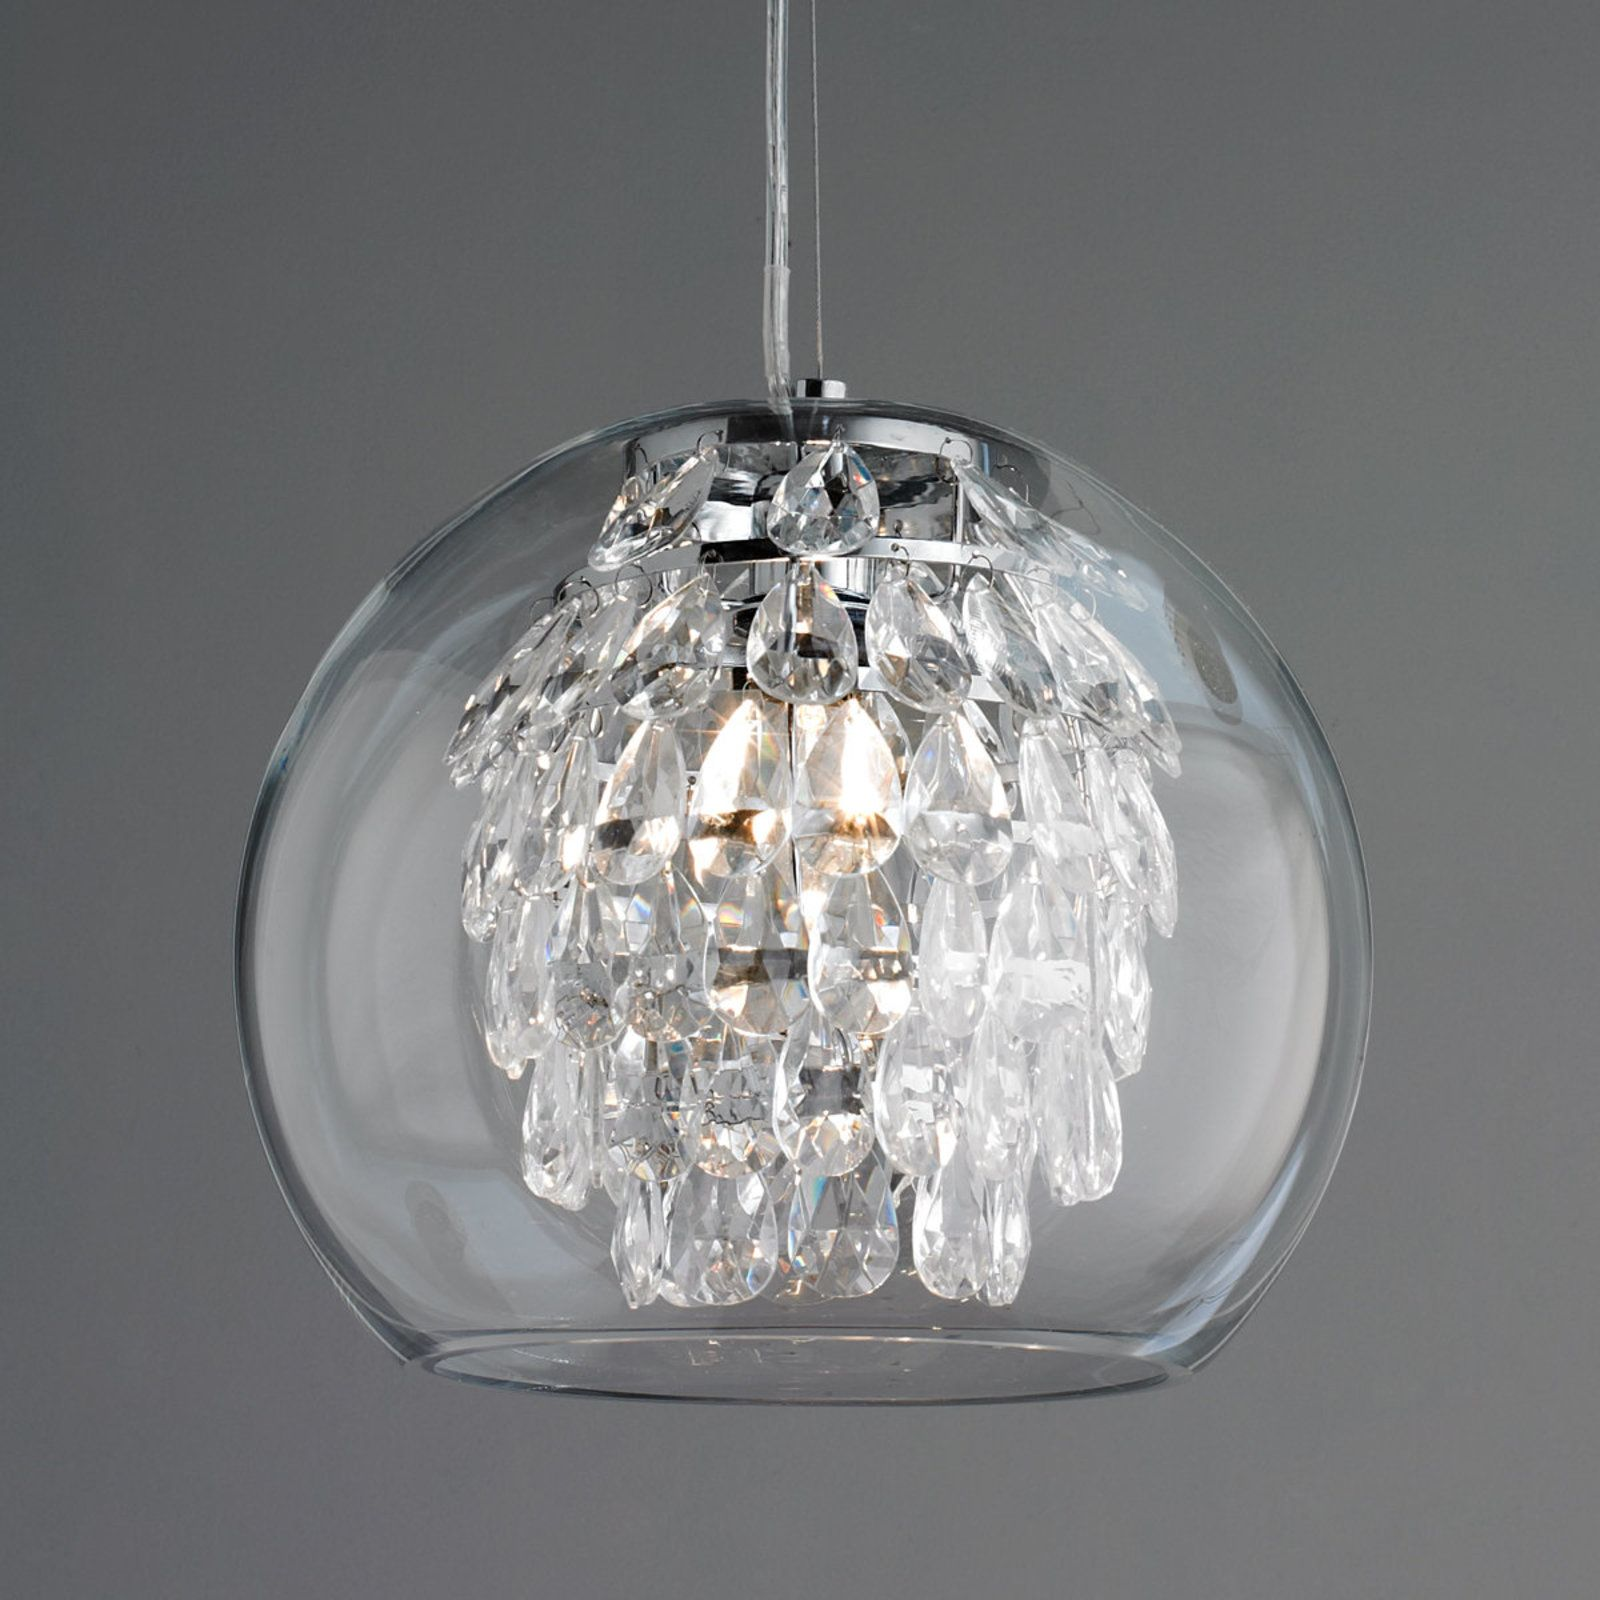 glass globe and crystal pendant light  crystal pendant lighting  - glass globe and crystal pendant light